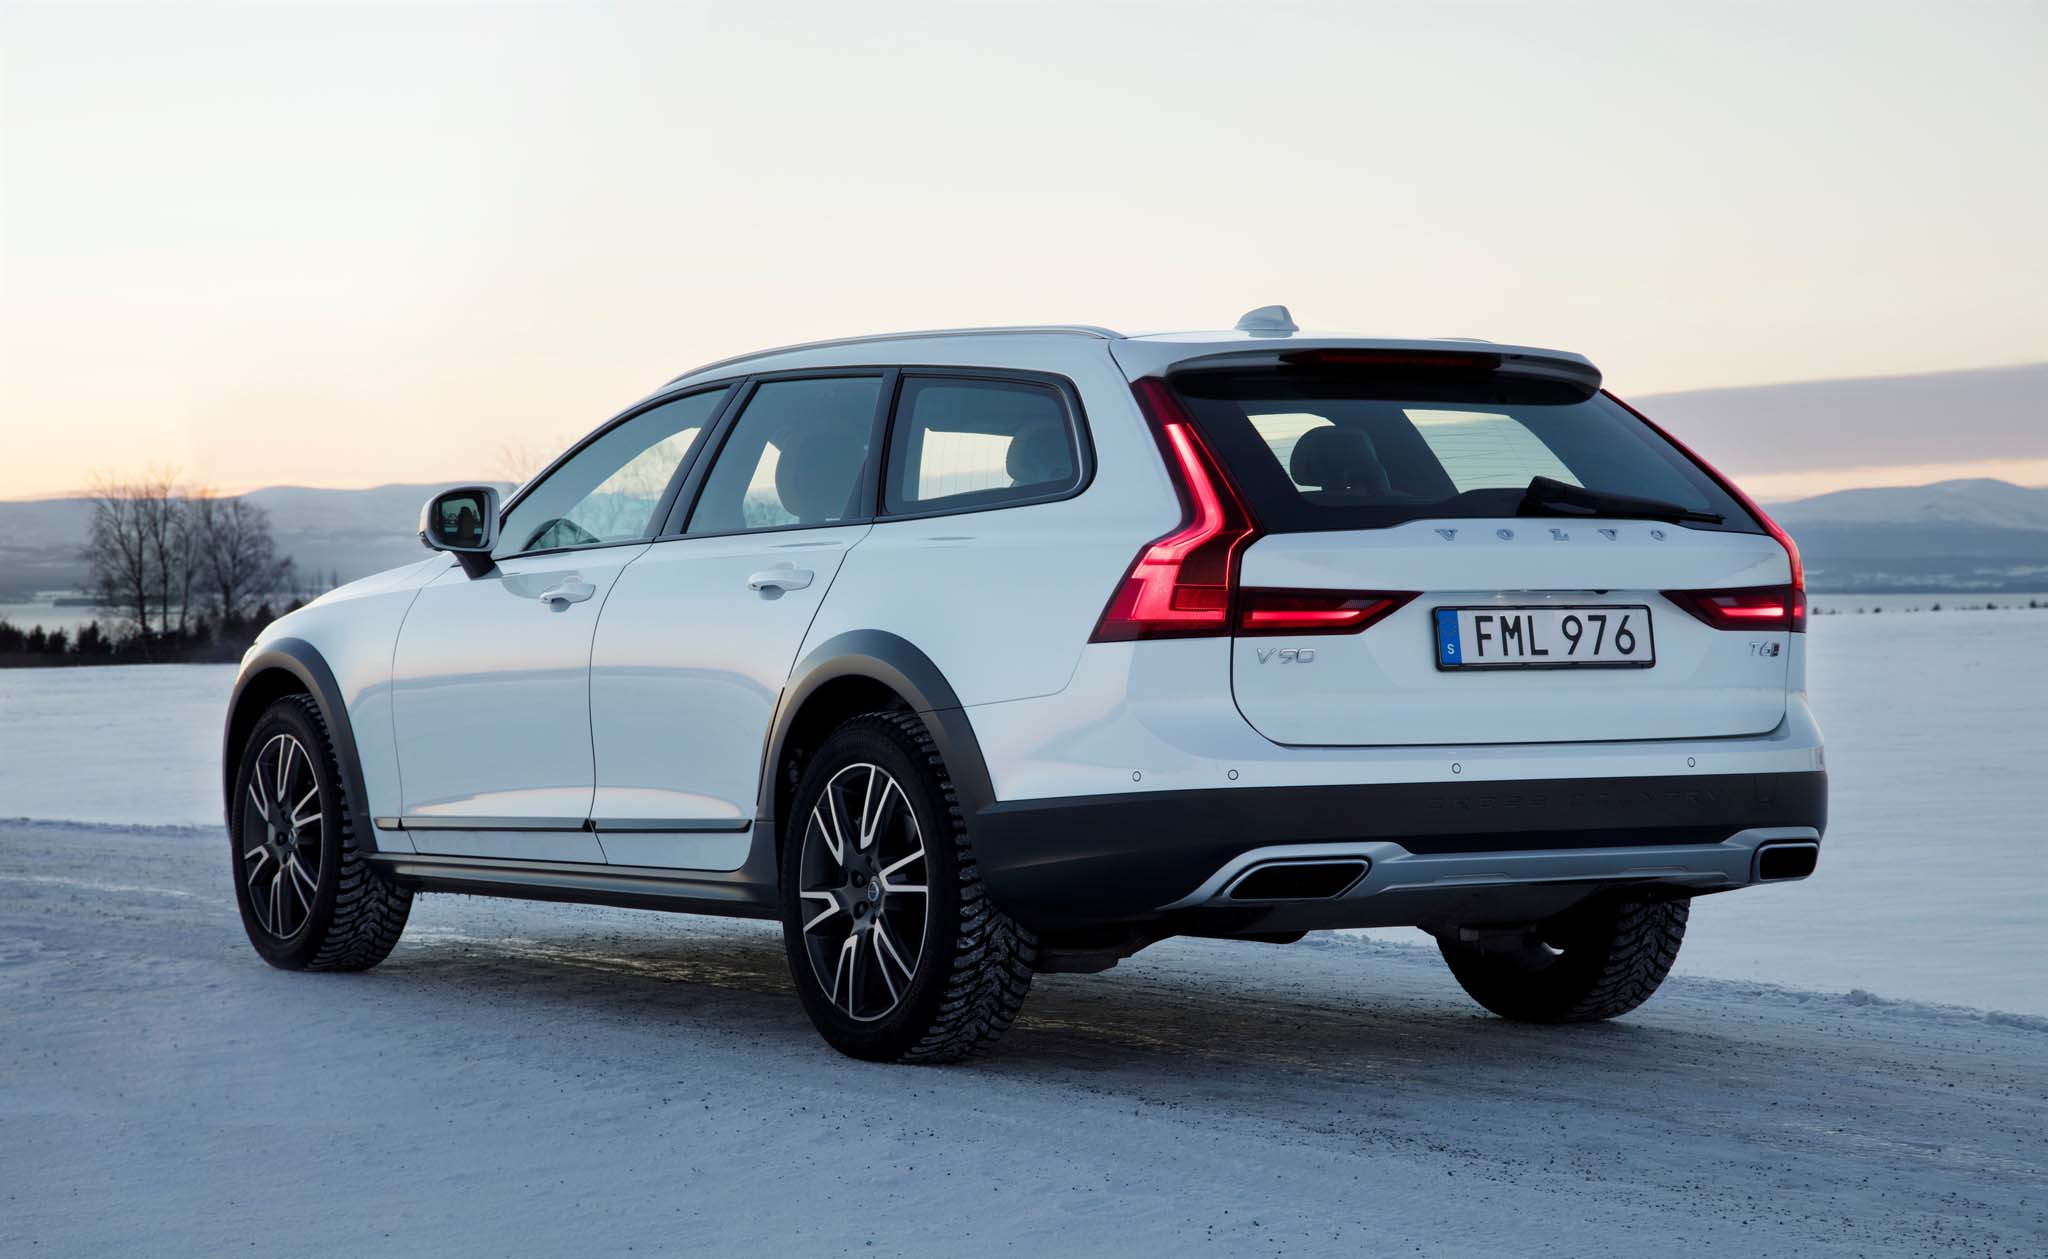 Volvo V90 Cross Country I 2016 - now Station wagon 5 door #3